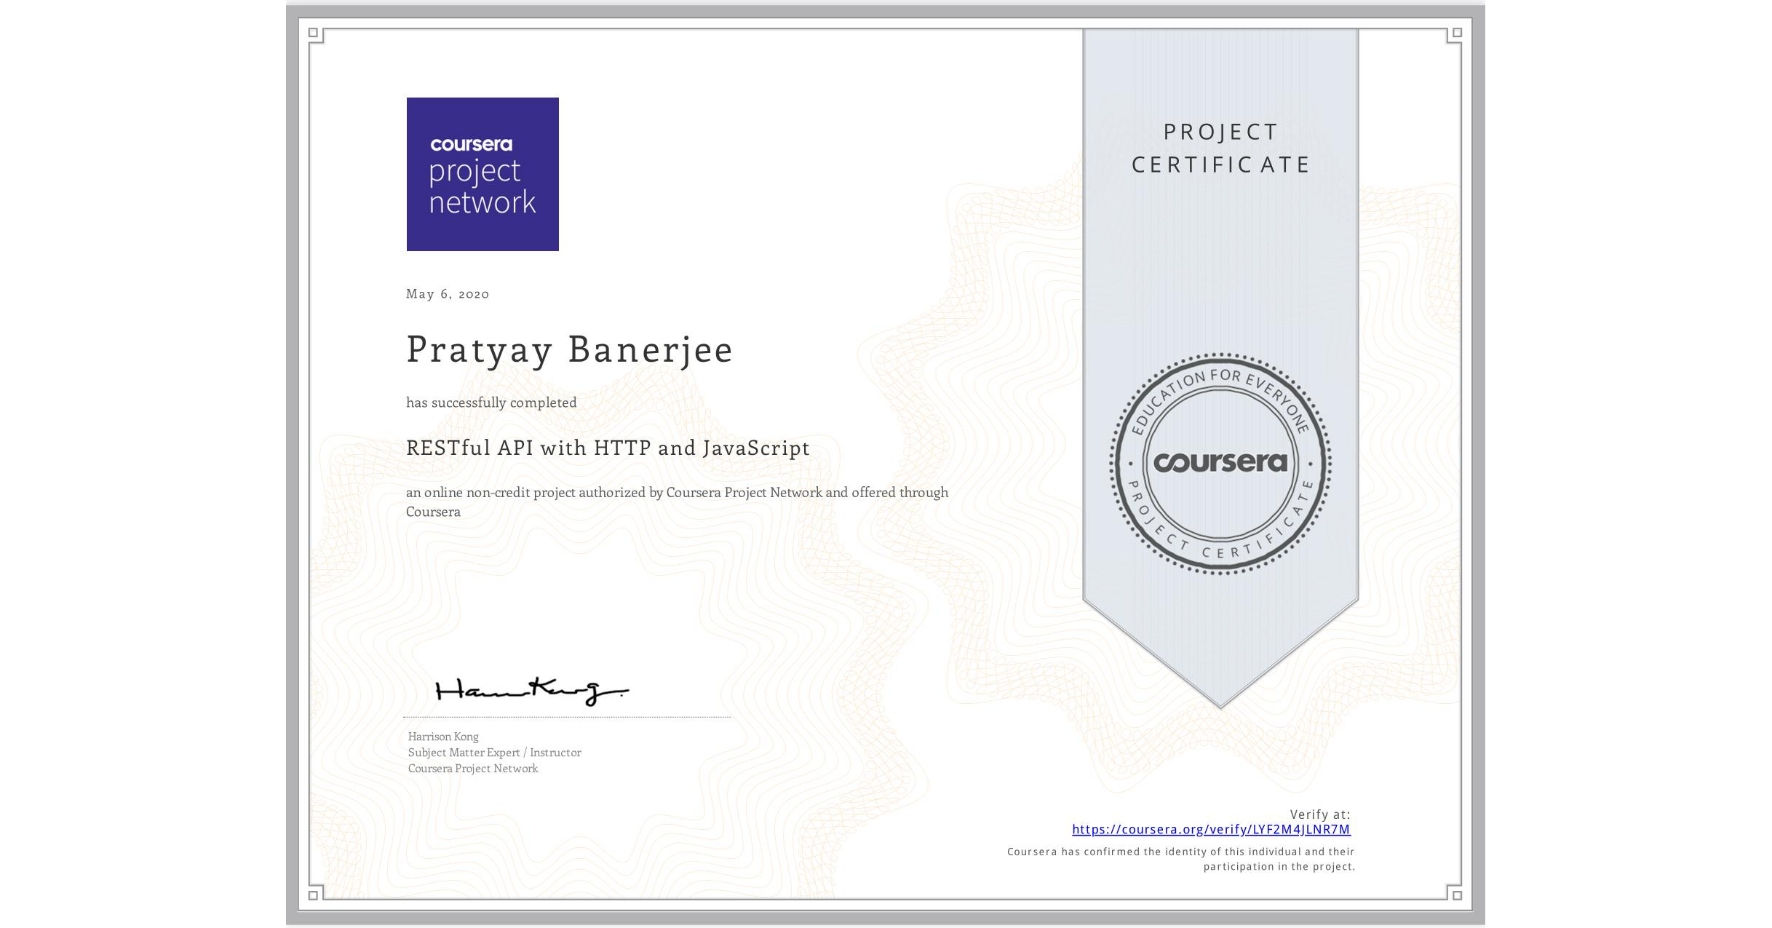 View certificate for Pratyay Banerjee, RESTful API with HTTP and JavaScript, an online non-credit course authorized by Coursera Project Network and offered through Coursera